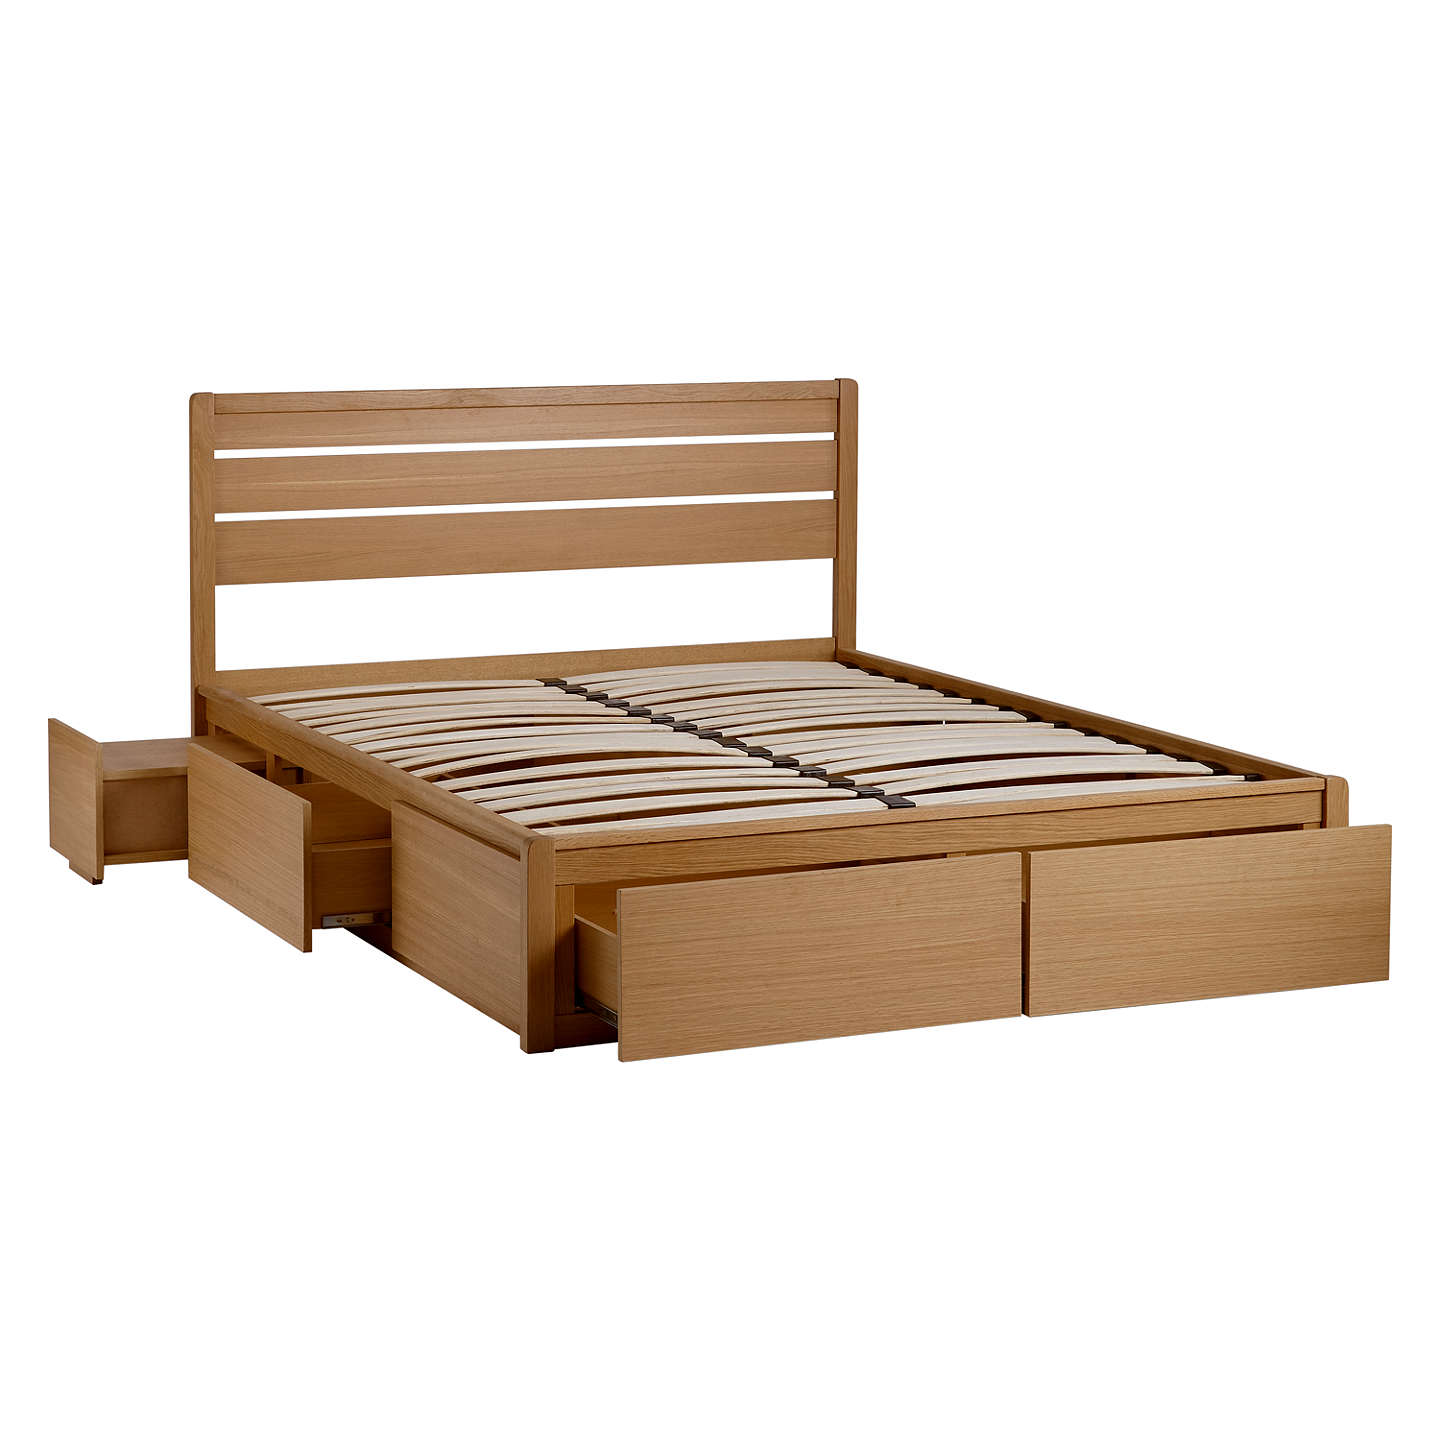 john lewis montreal storage bed king size oak at john lewis 14150 | 235920981alt3 rsp pdp main 1440